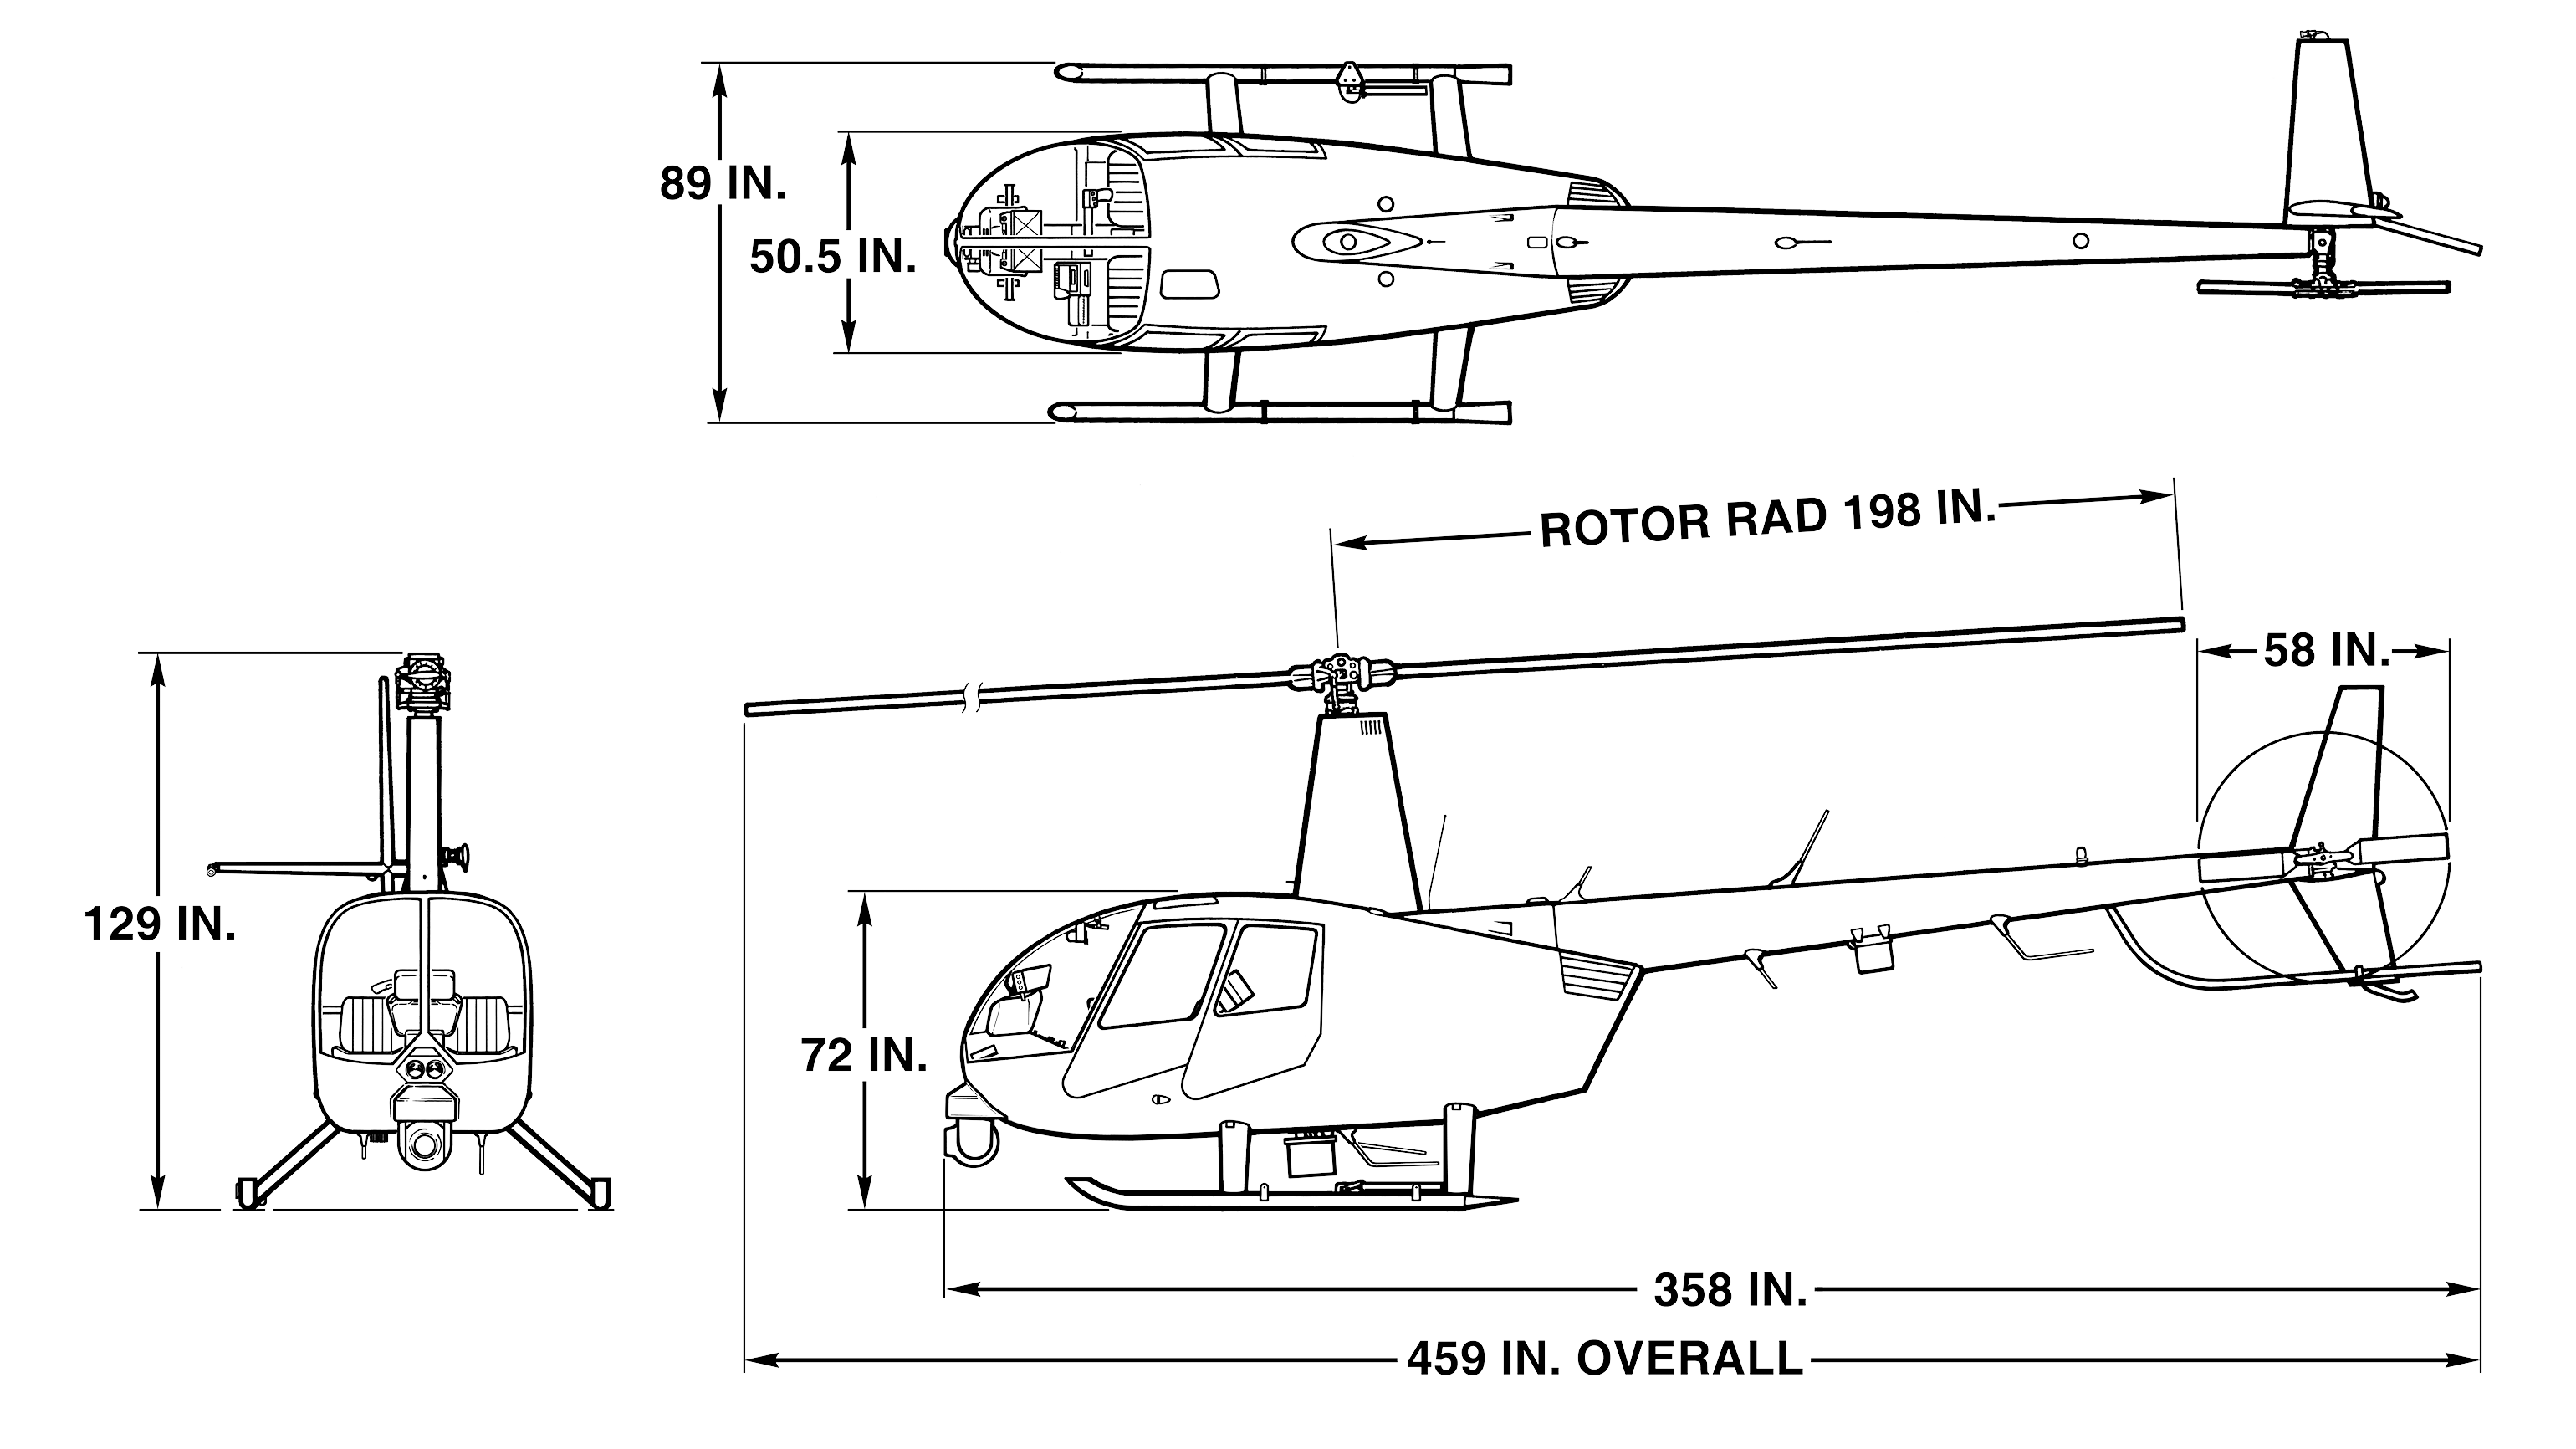 r44 newscopter dimensions